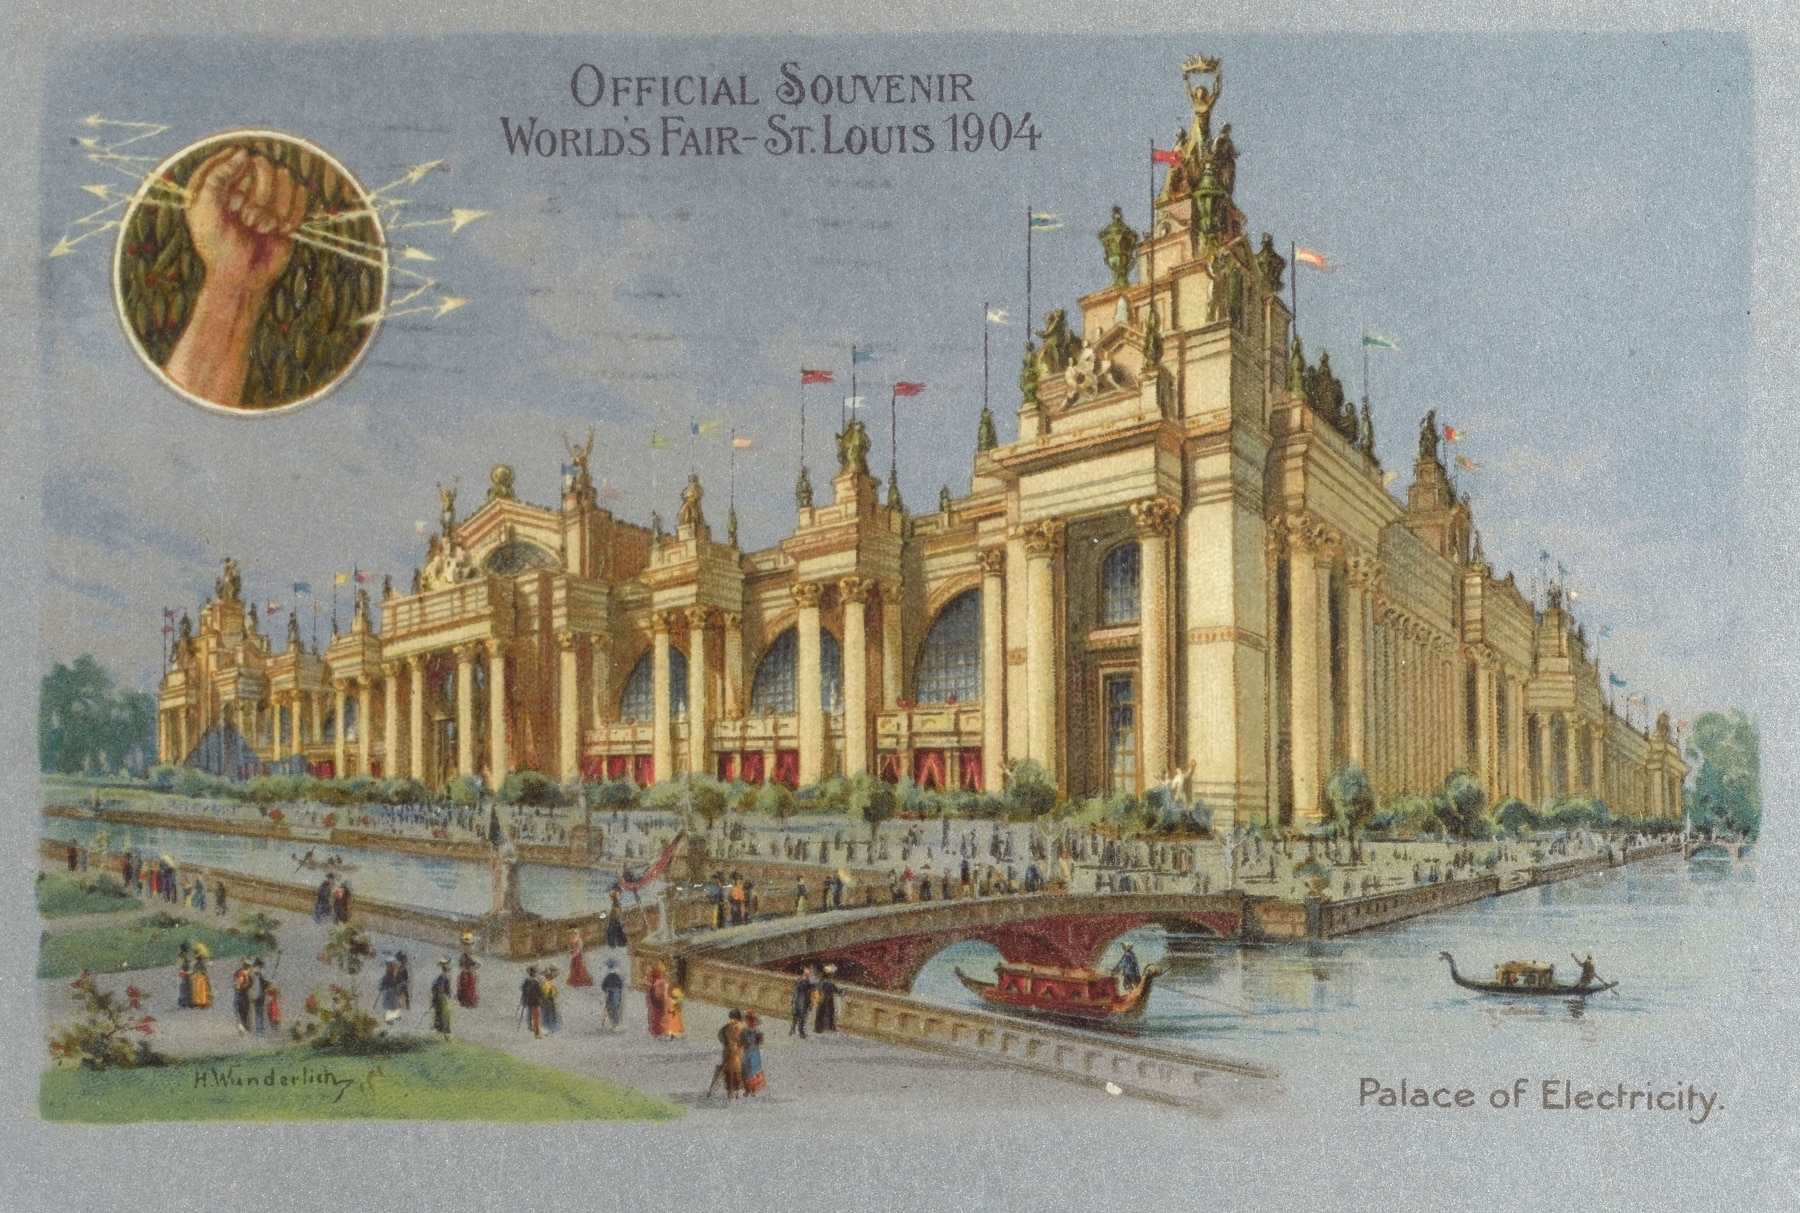 Poster from 1904 St Louis World's Fair showing palace (Alamy)